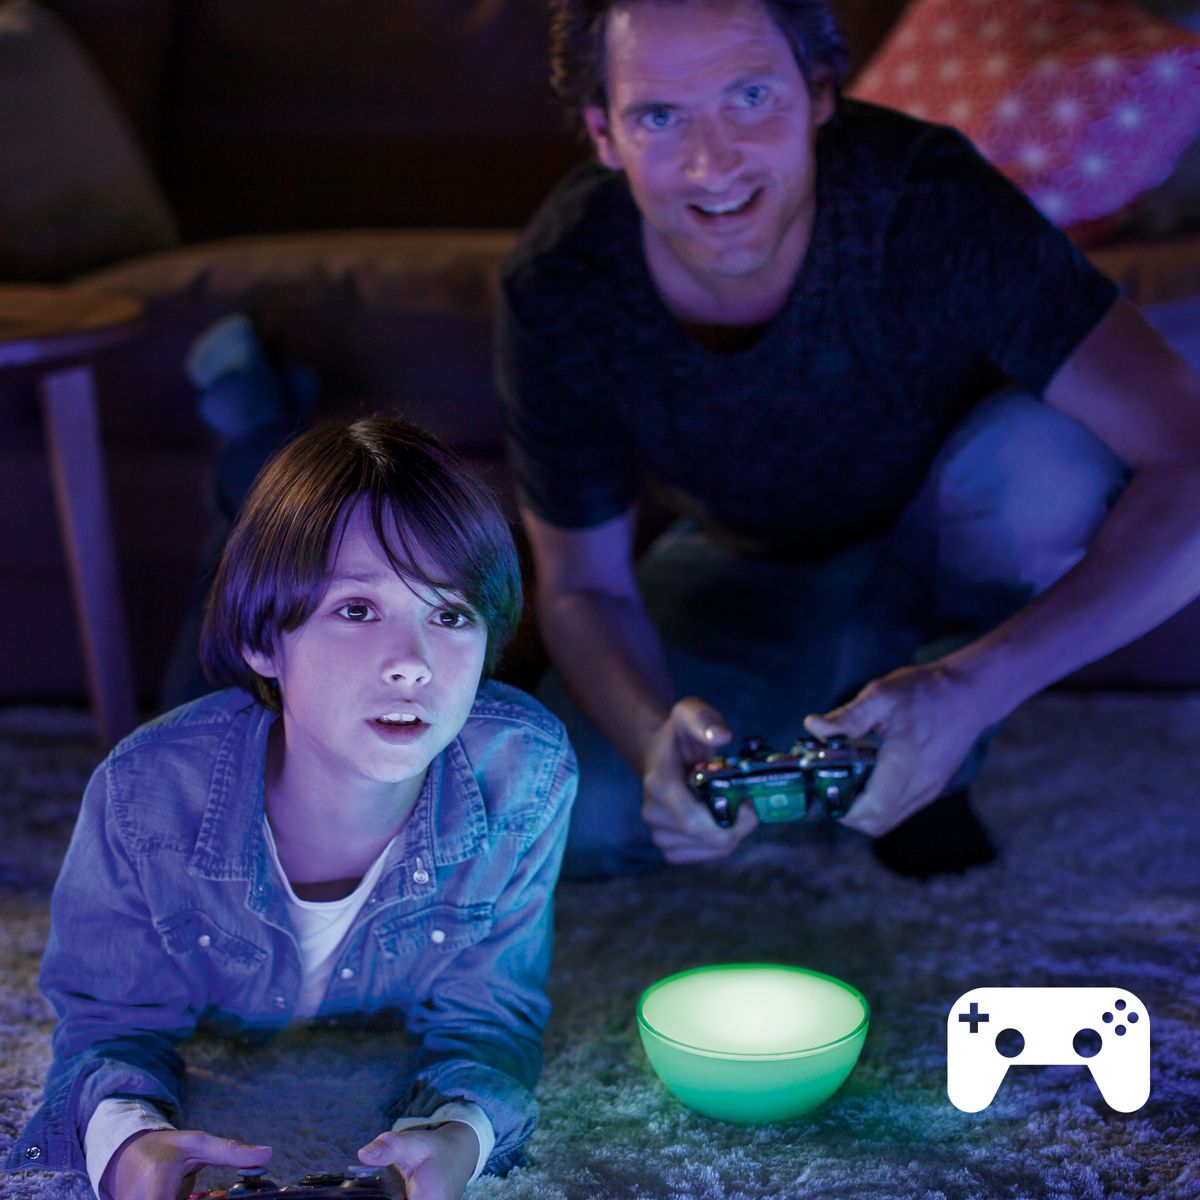 Light up your gaming